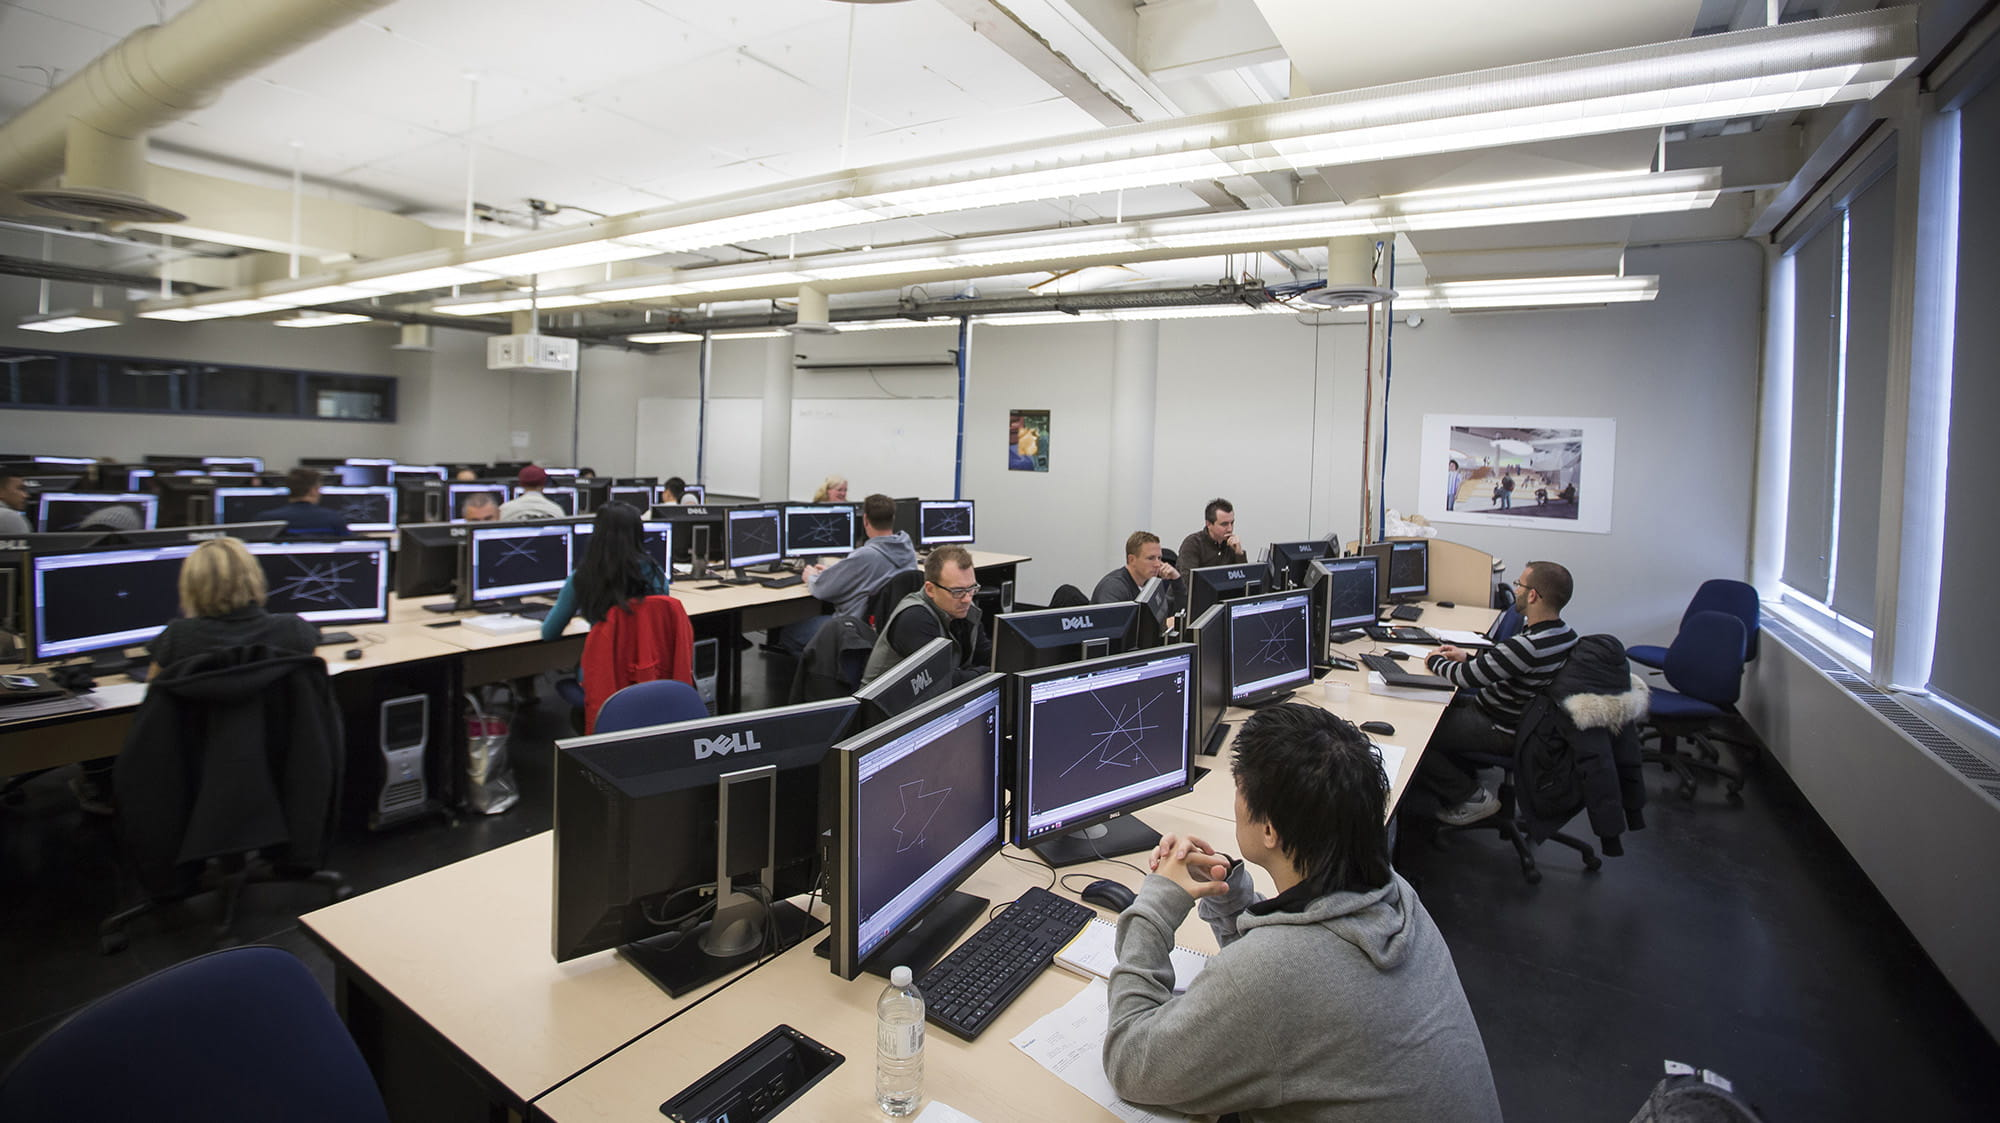 Students working at computers in a CAD lab